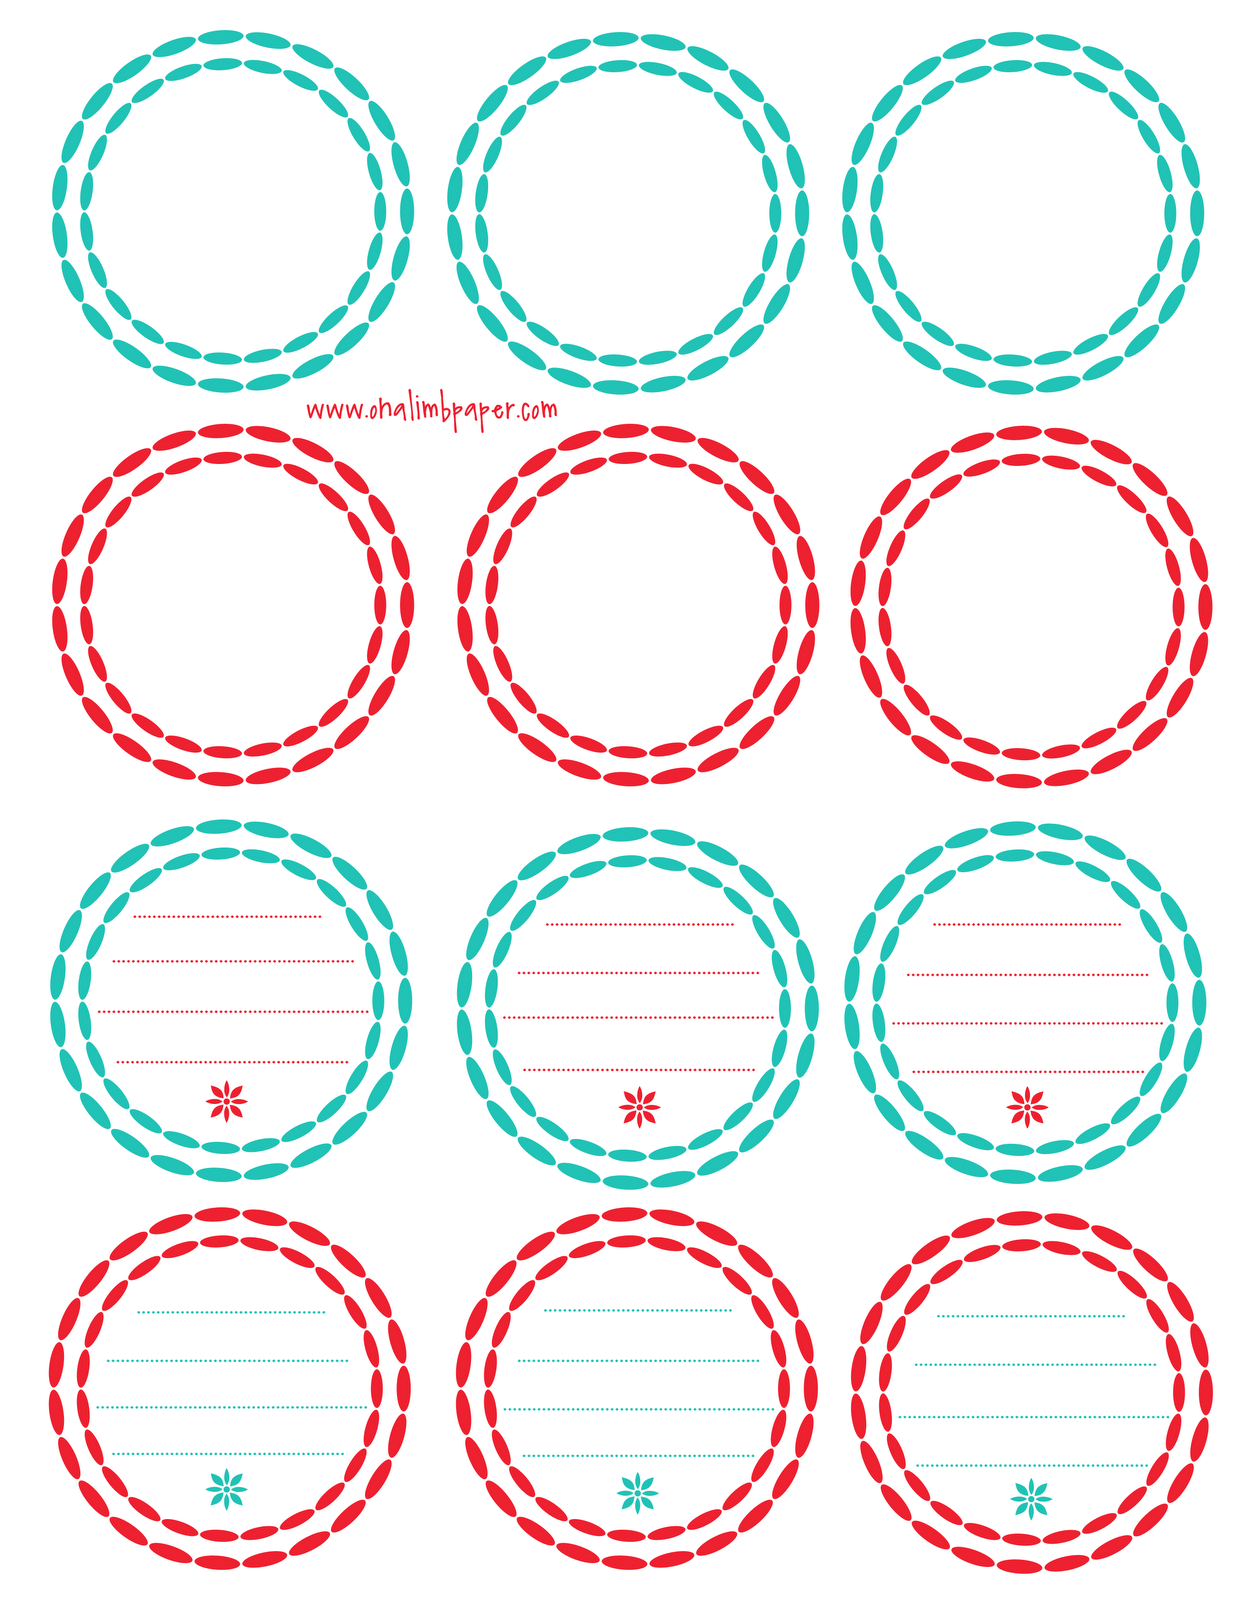 circle gift tag template - 7 best images of round blank printable gift tags free